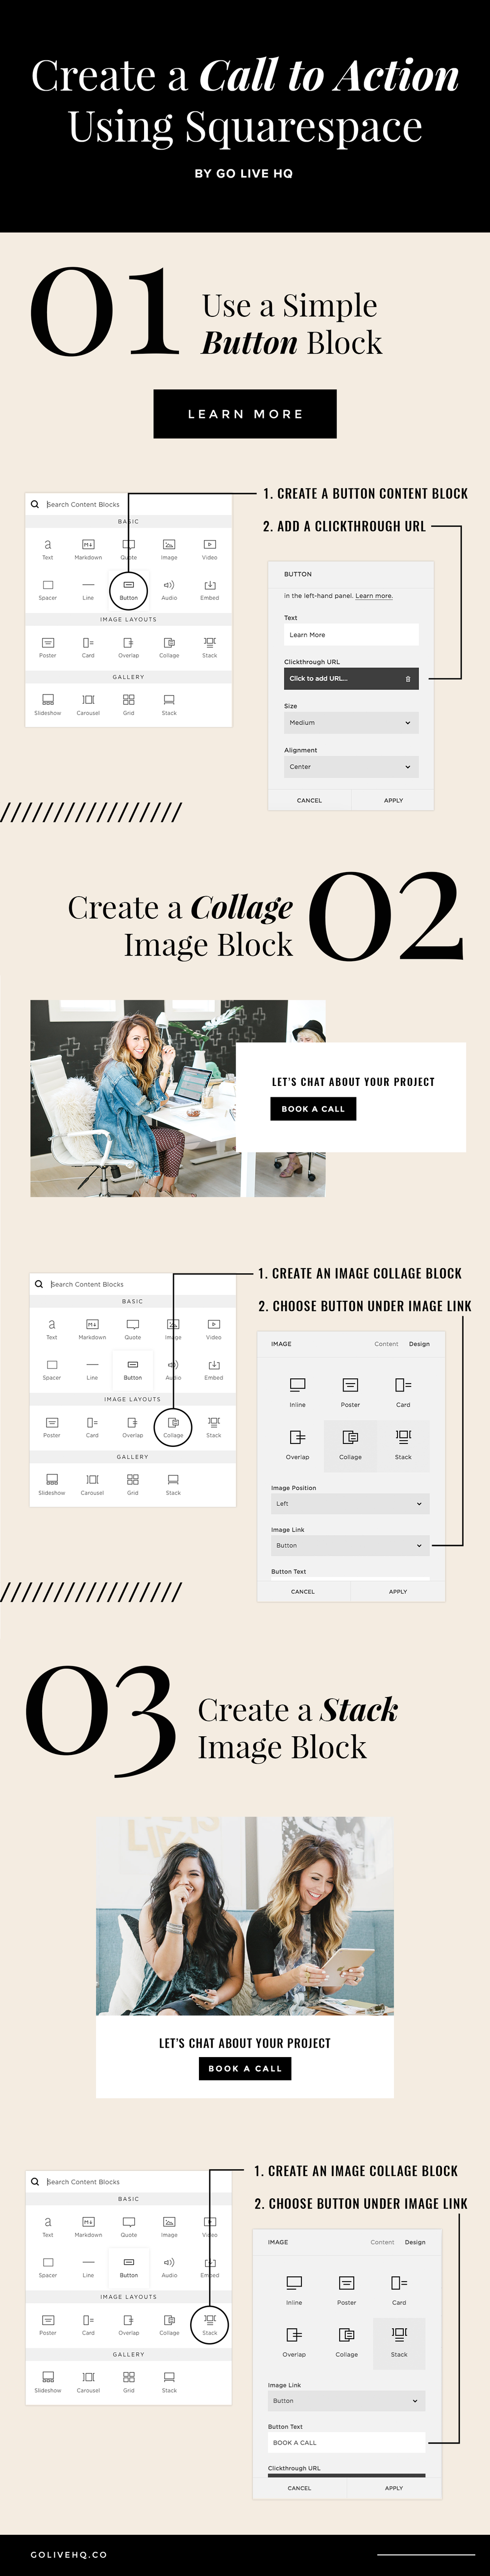 Use Squarespace Tools To Create A Call To Action | By Go Live HQ